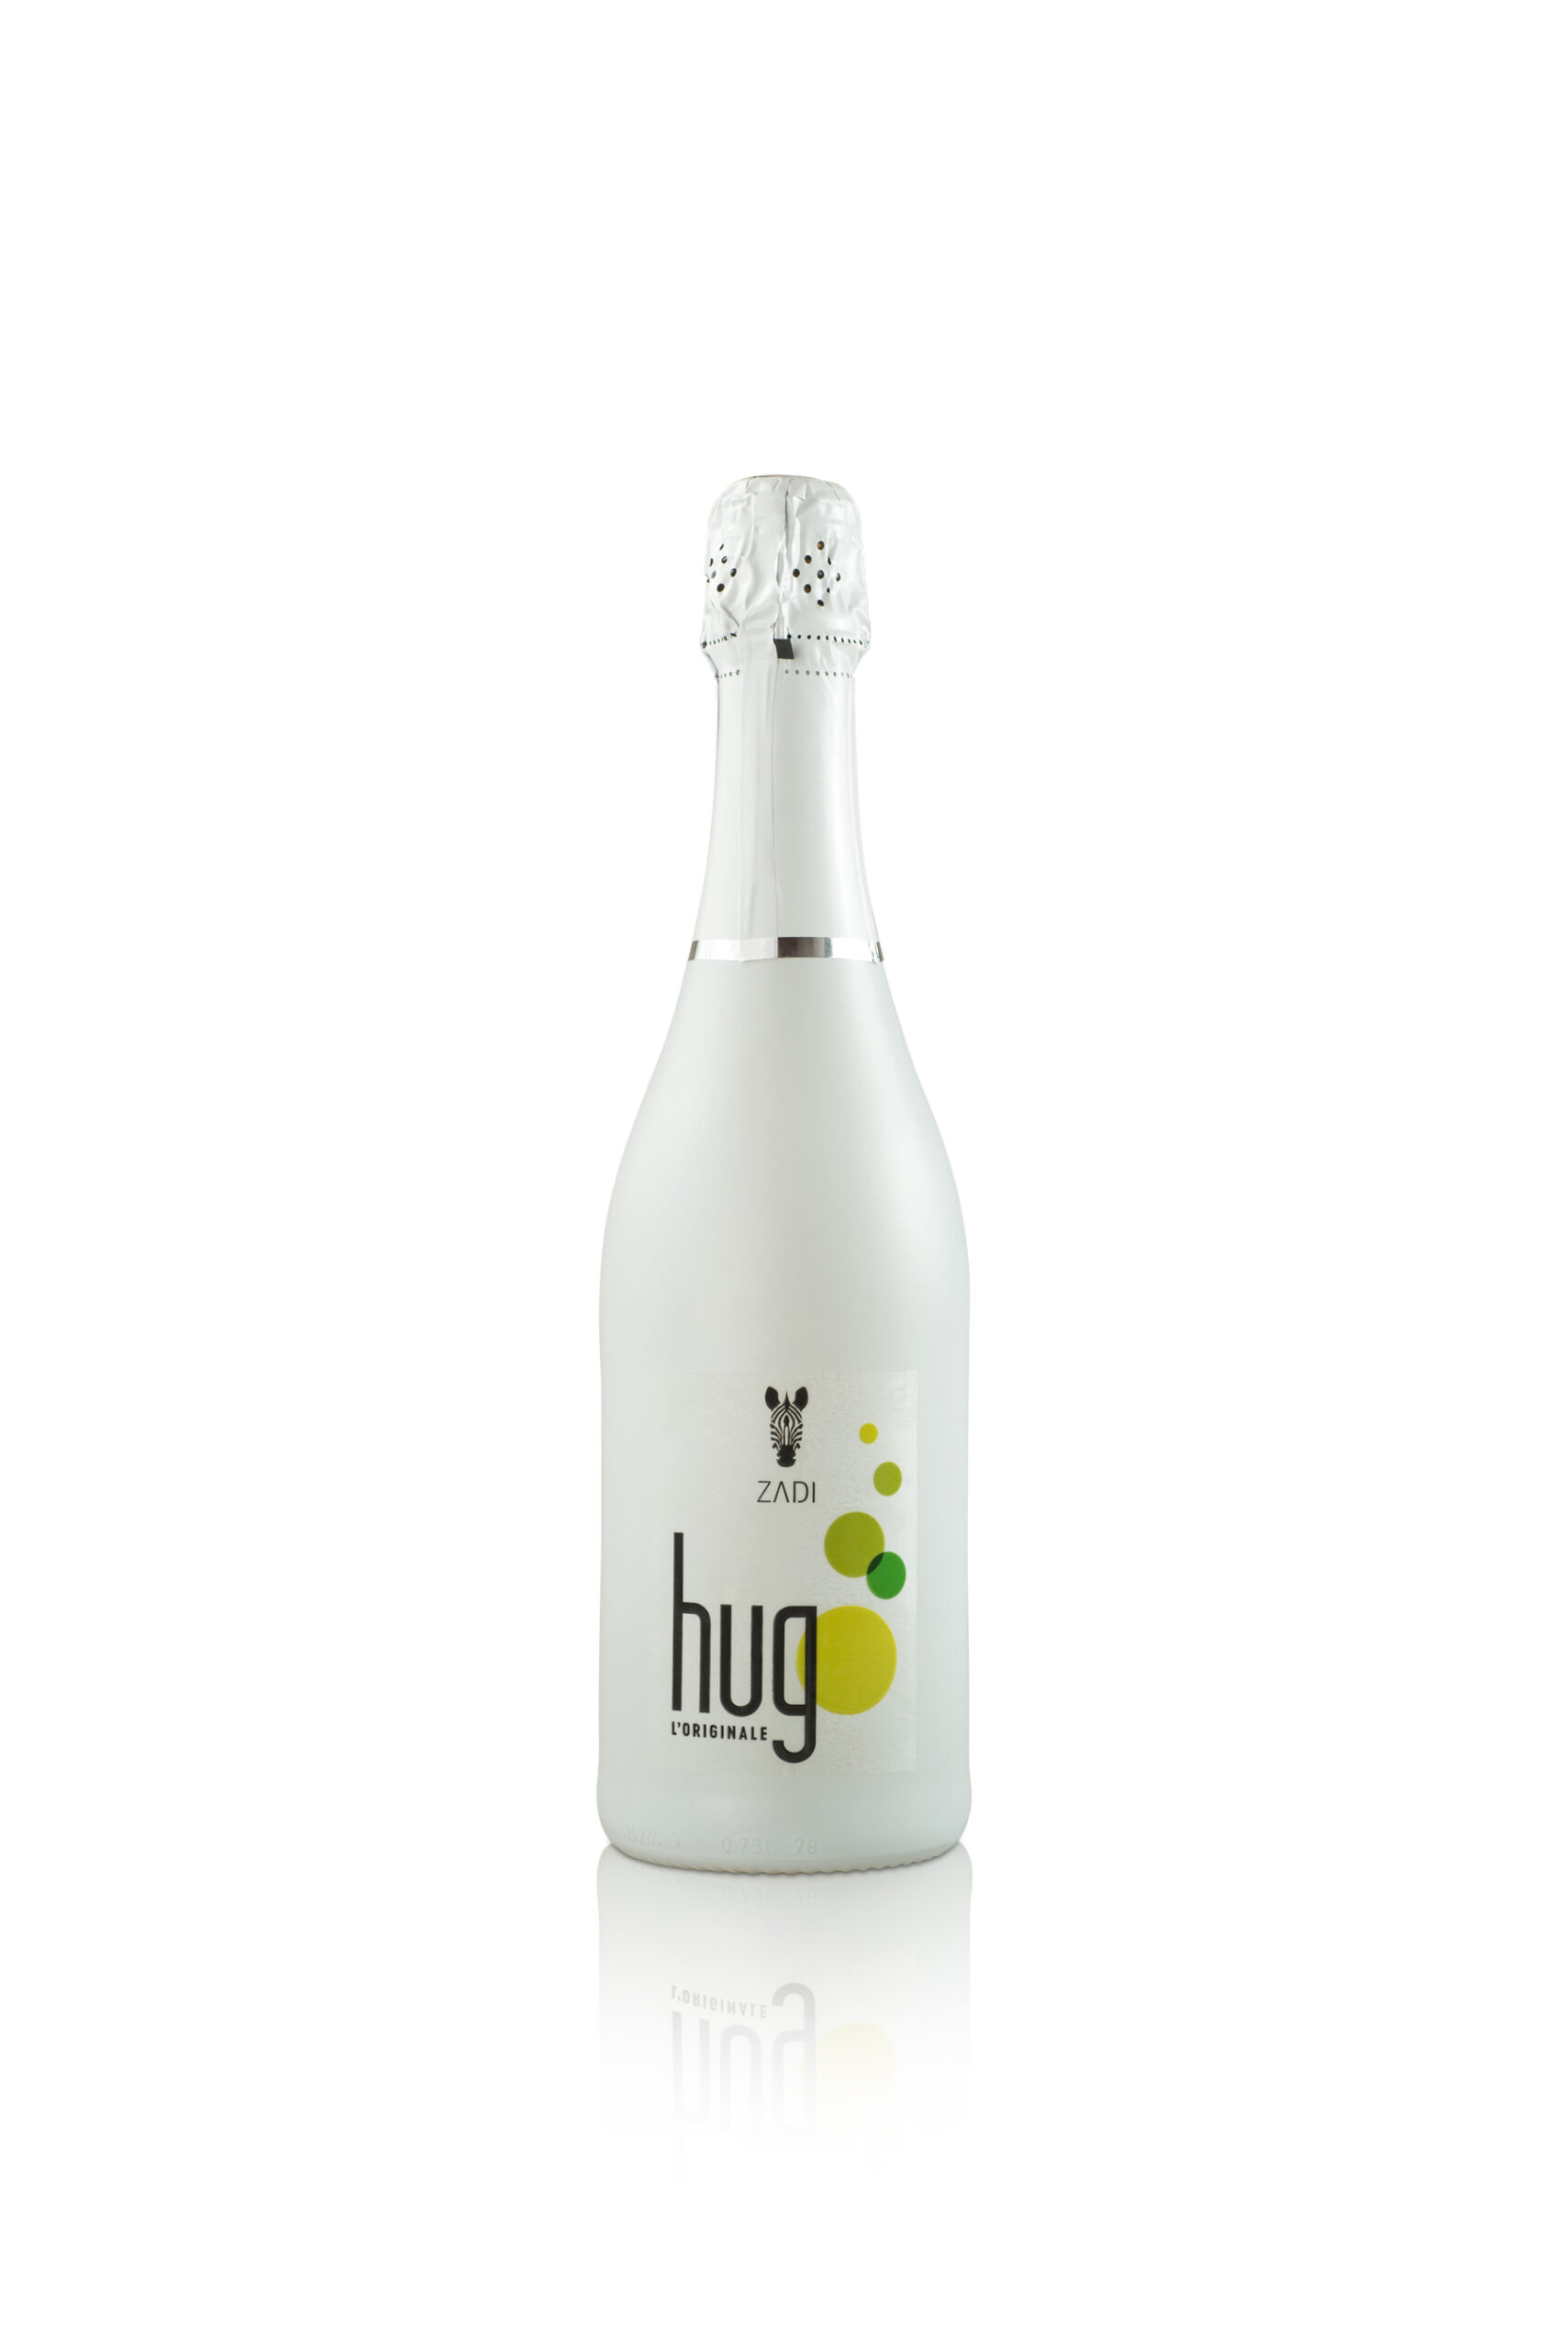 fles Hugo l'originale 75cl.